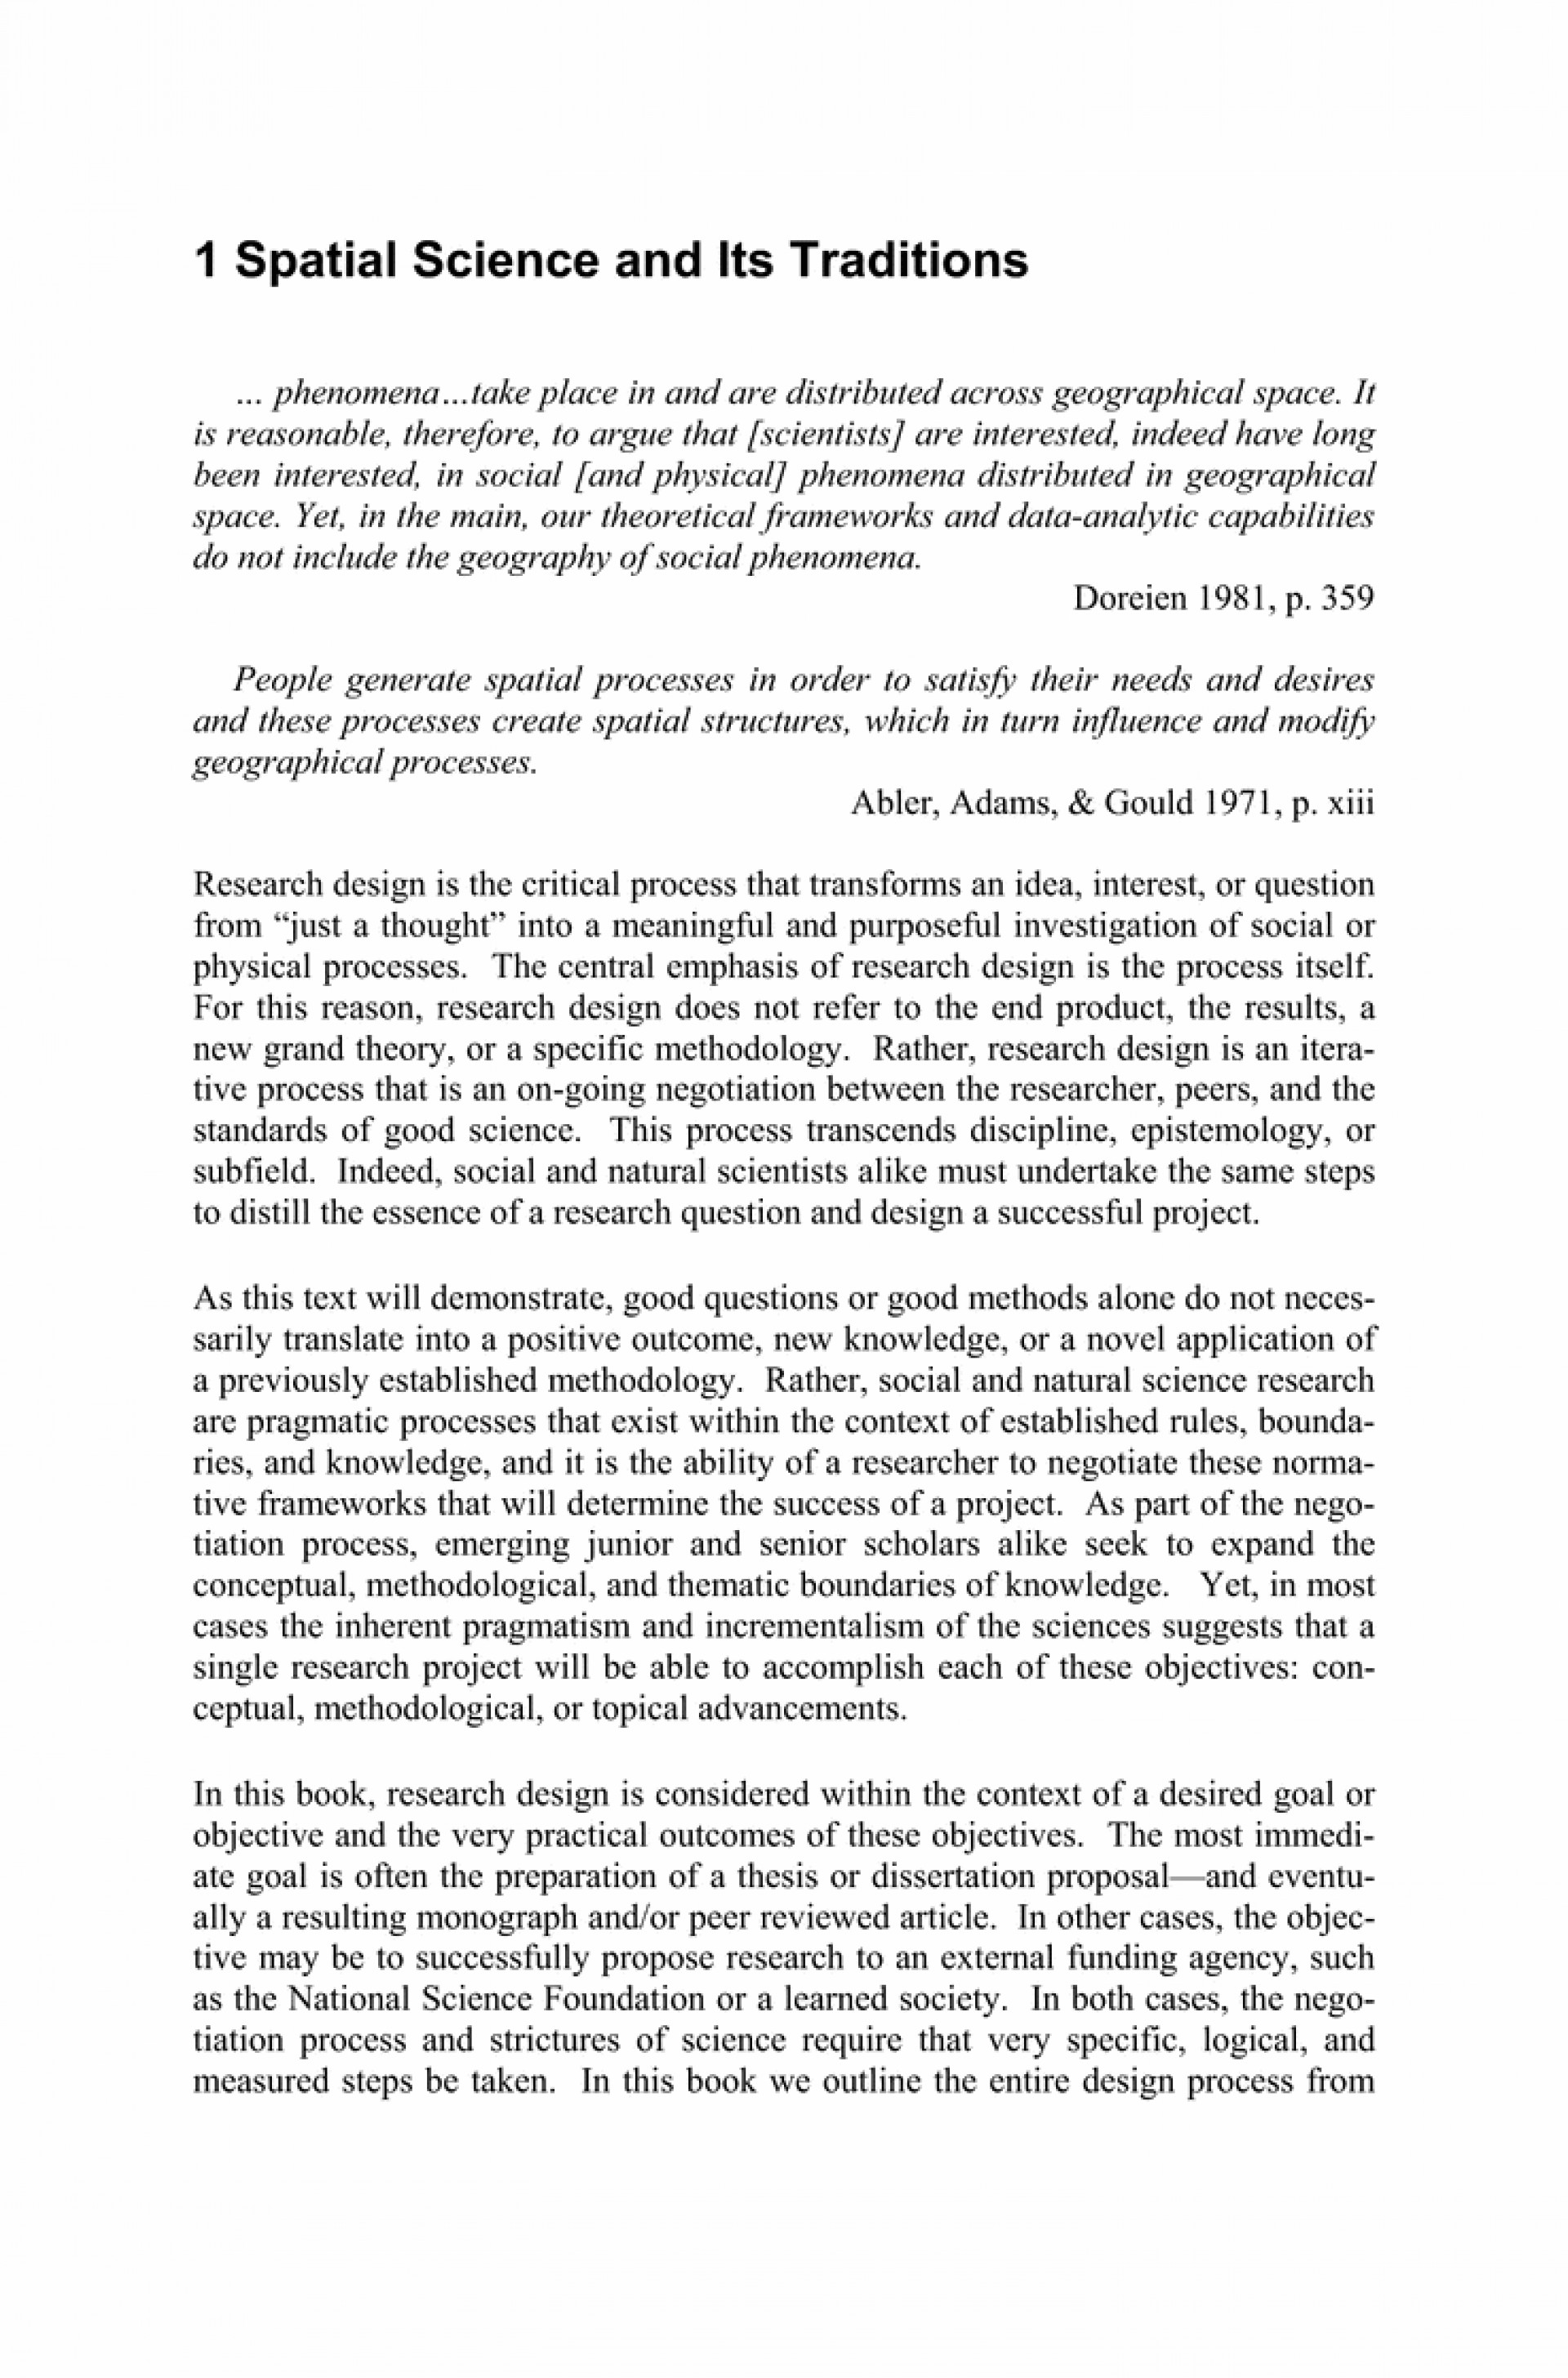 003 Example Of Scientific Research Proposal Paper Stunning A 1920